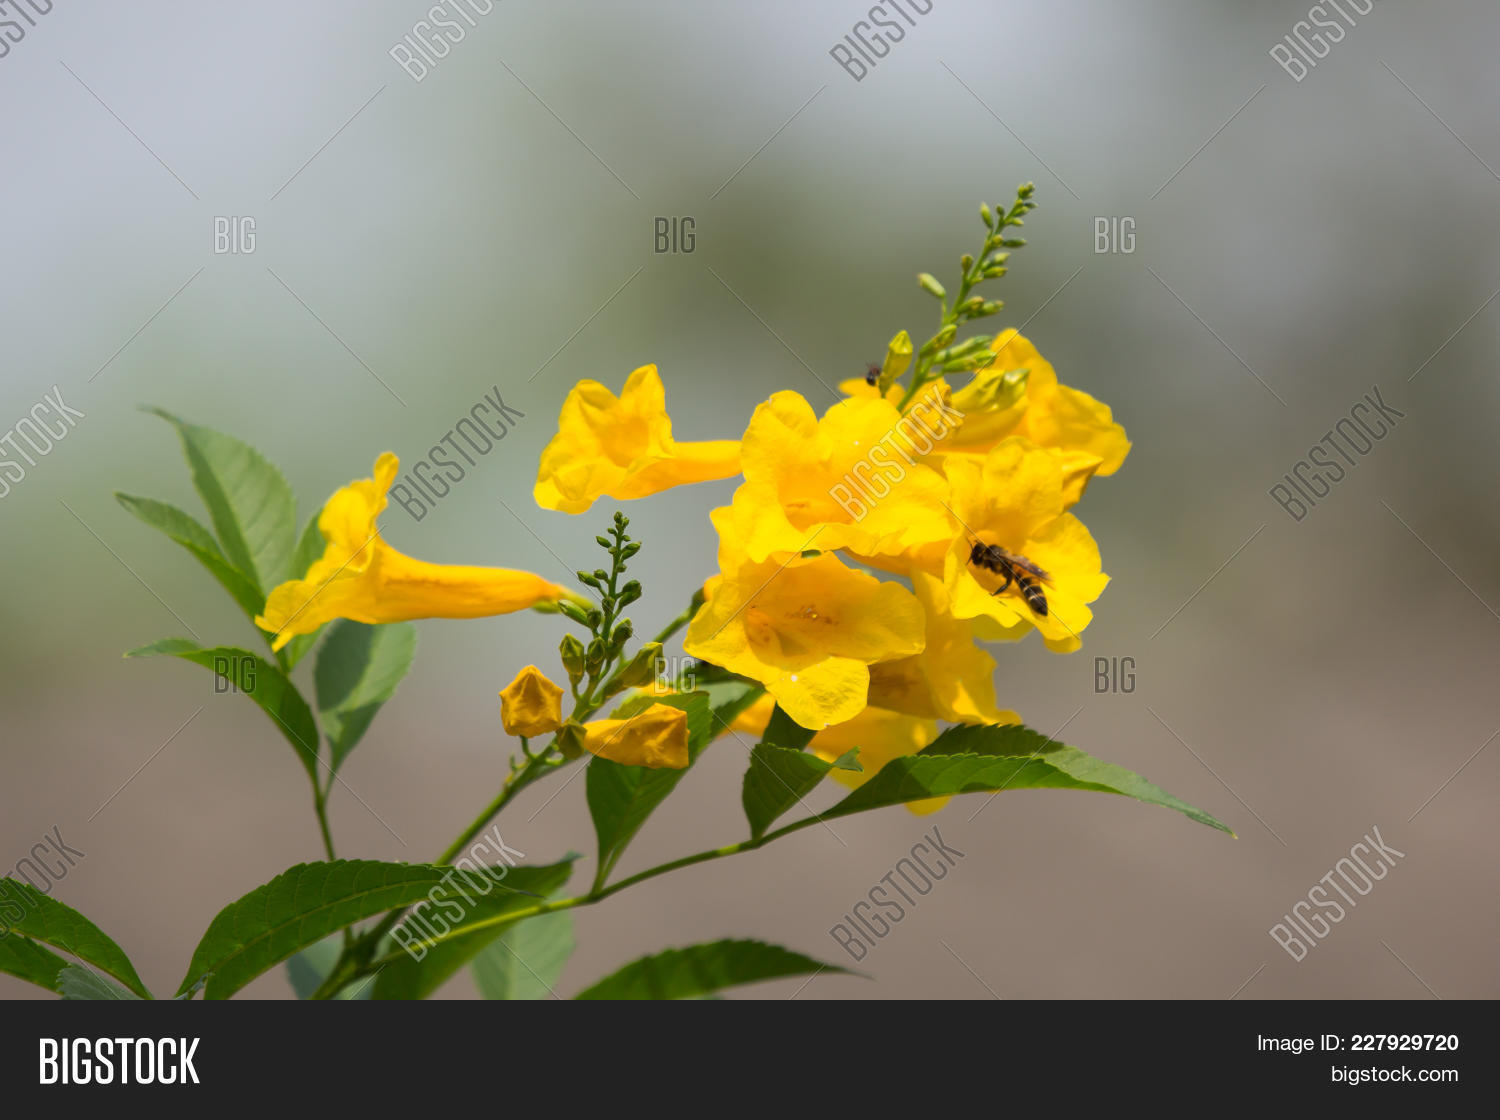 Bee Yellow Flower Image Photo Free Trial Bigstock